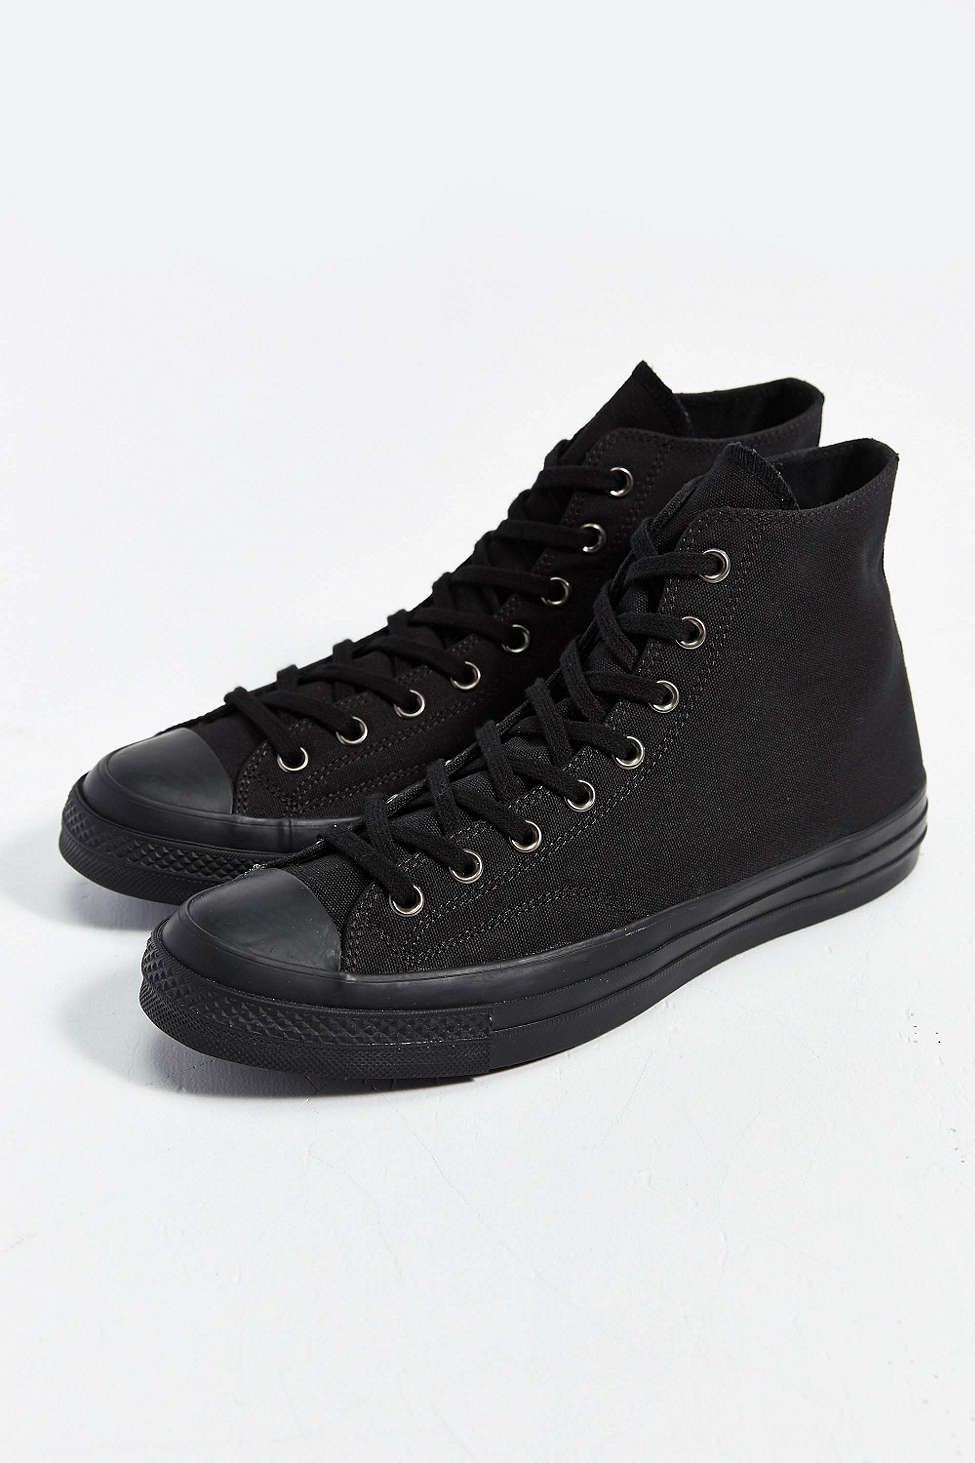 8589b21d41e9 Converse Chuck Taylor All Star 70s Mono High-Top Sneaker in 2019 ...